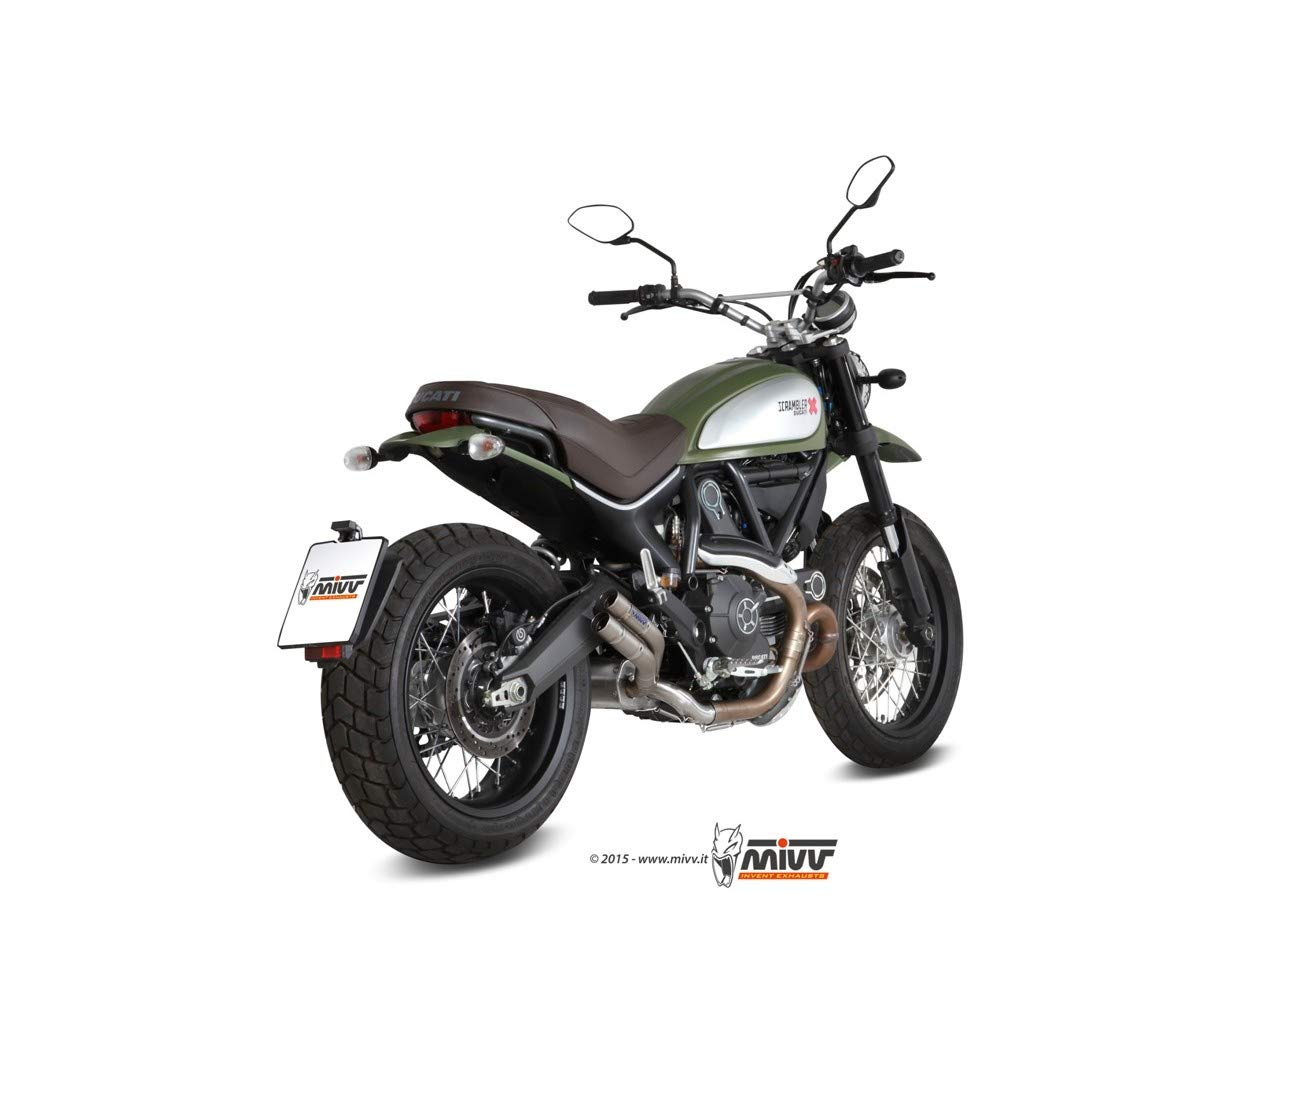 Amazon.com: Pieces Motos AGPL 800 scrambler-15/17-silencieux ...